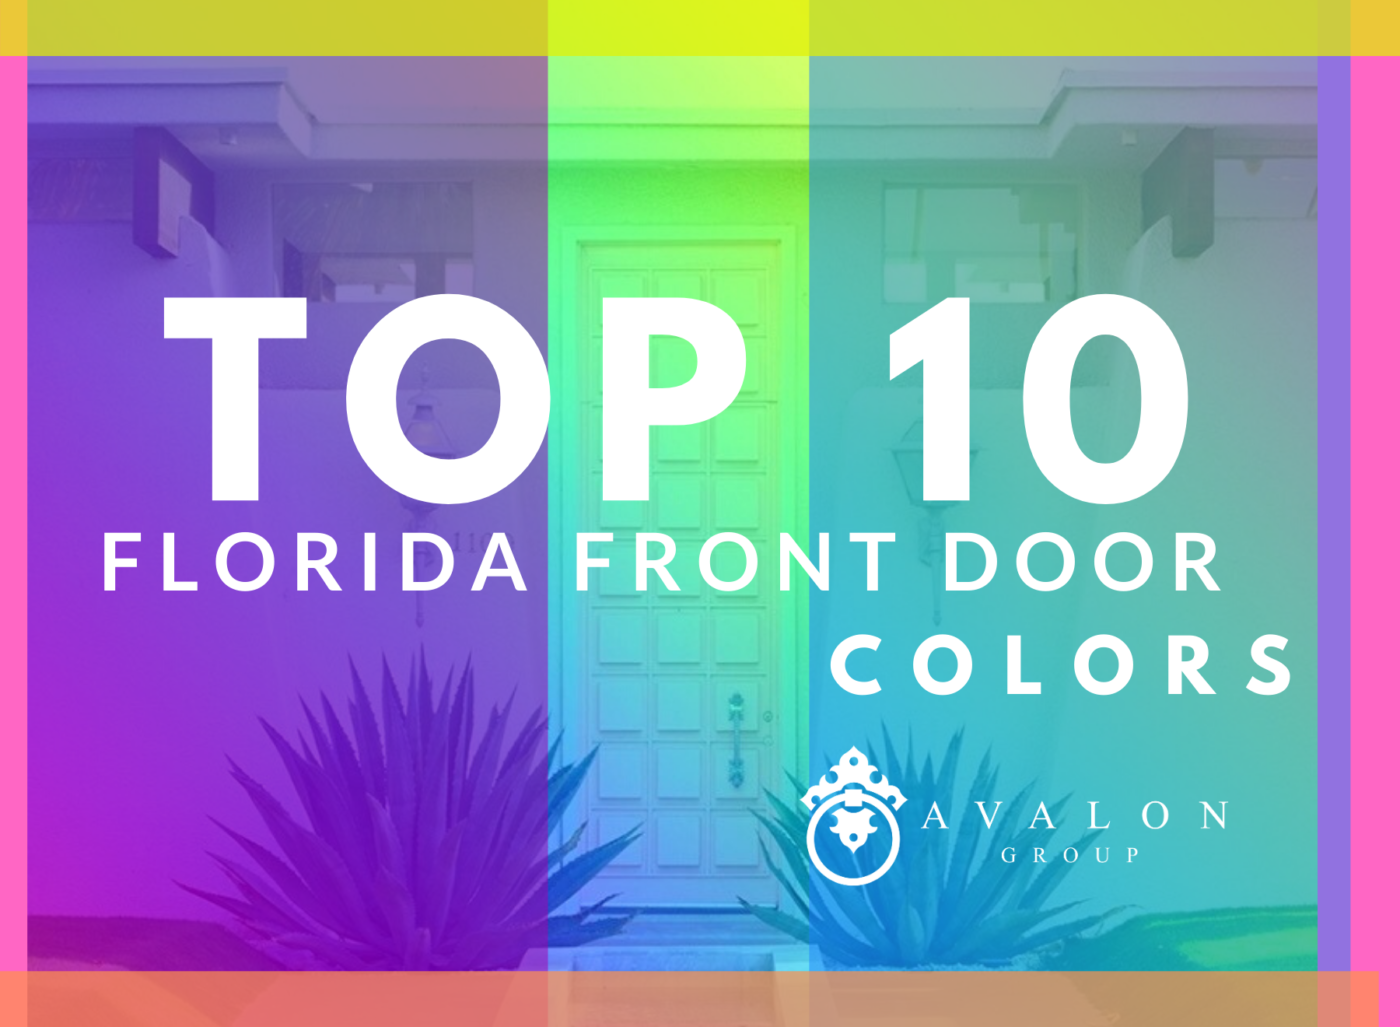 Furthermore, the cover photo ofTop 10 Florida Front Door Colors has a rainbow filter with lots of colors. Every color is bright and happy. In the background is a front door to a home.